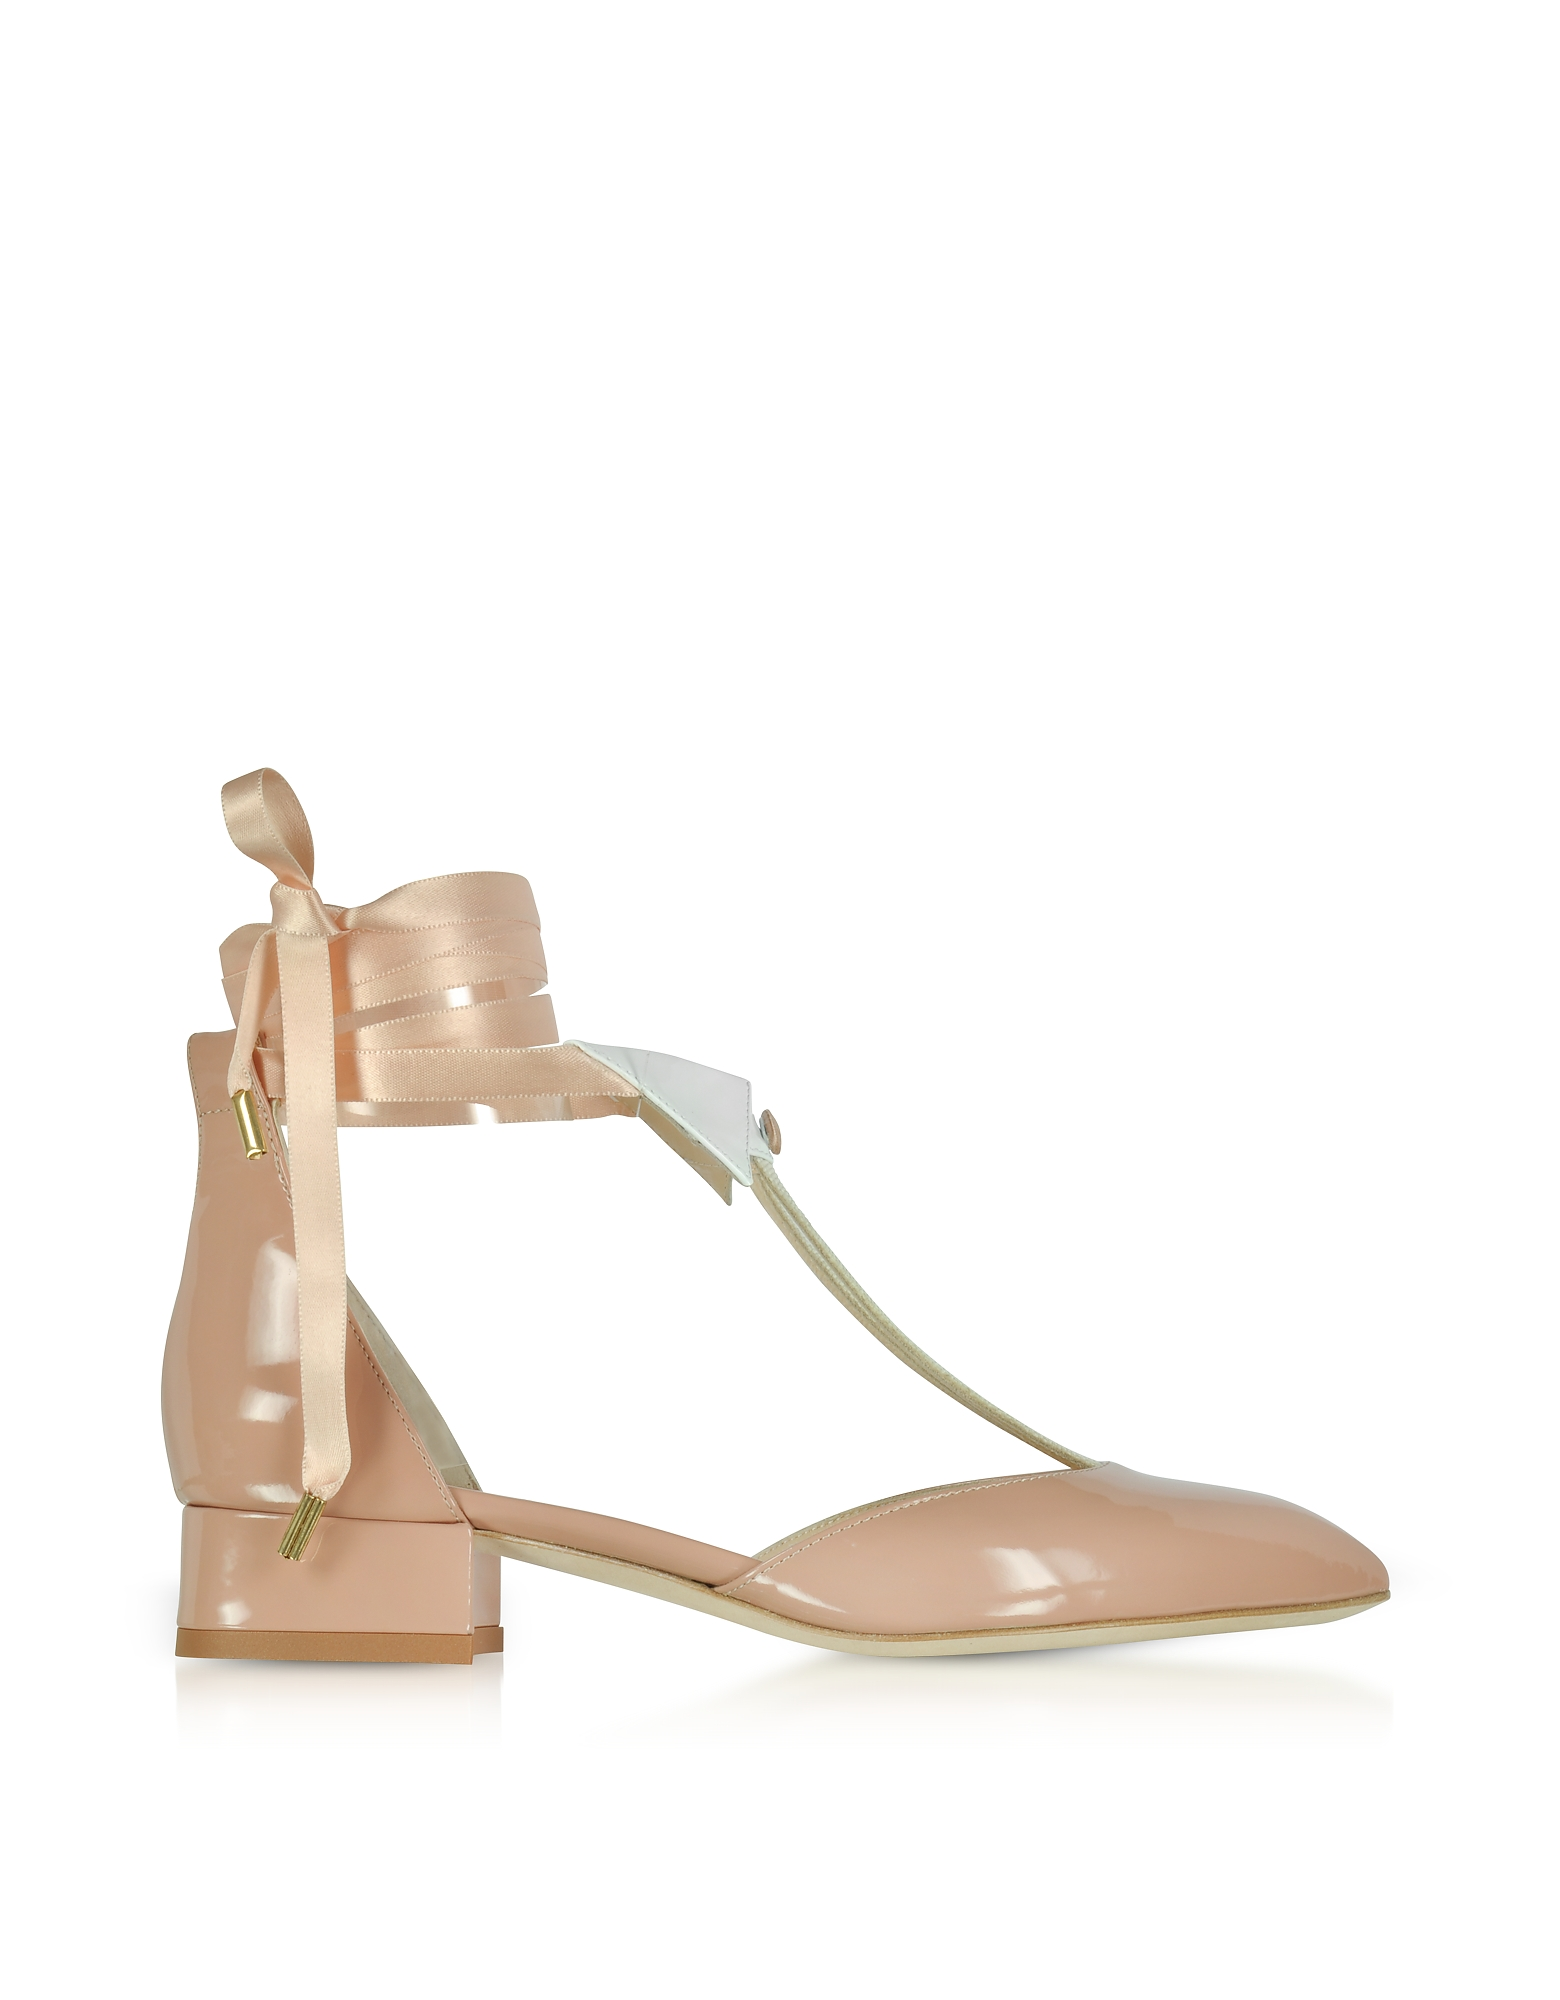 Olgana Paris Shoes, L'Ideal Nude Patent Leather Mid-Heel Pump